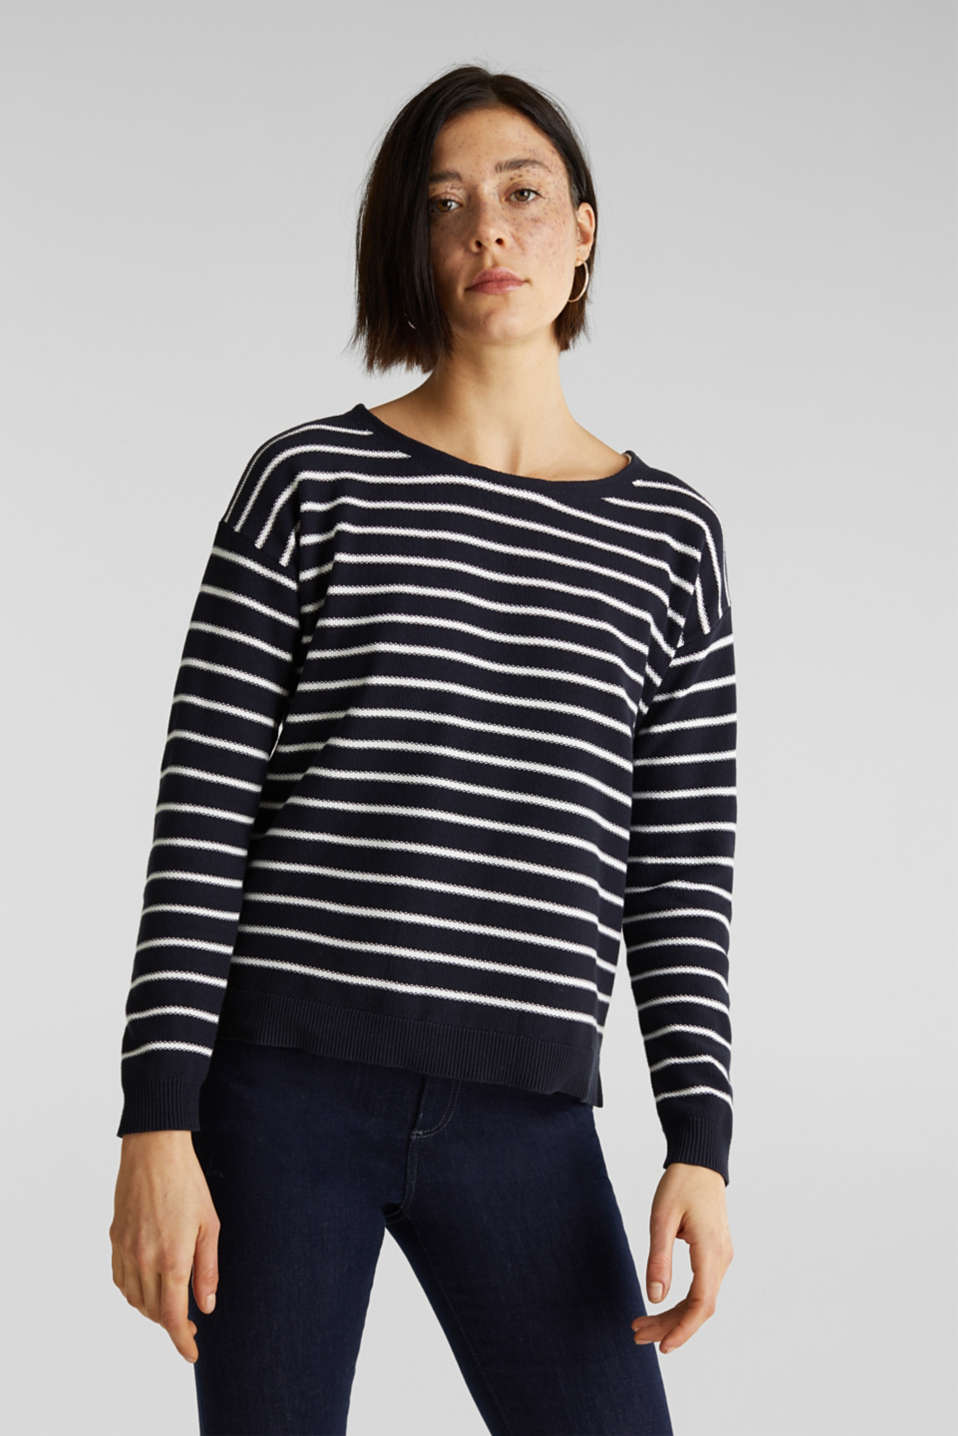 Esprit - Lace-up detail jumper, 100% cotton